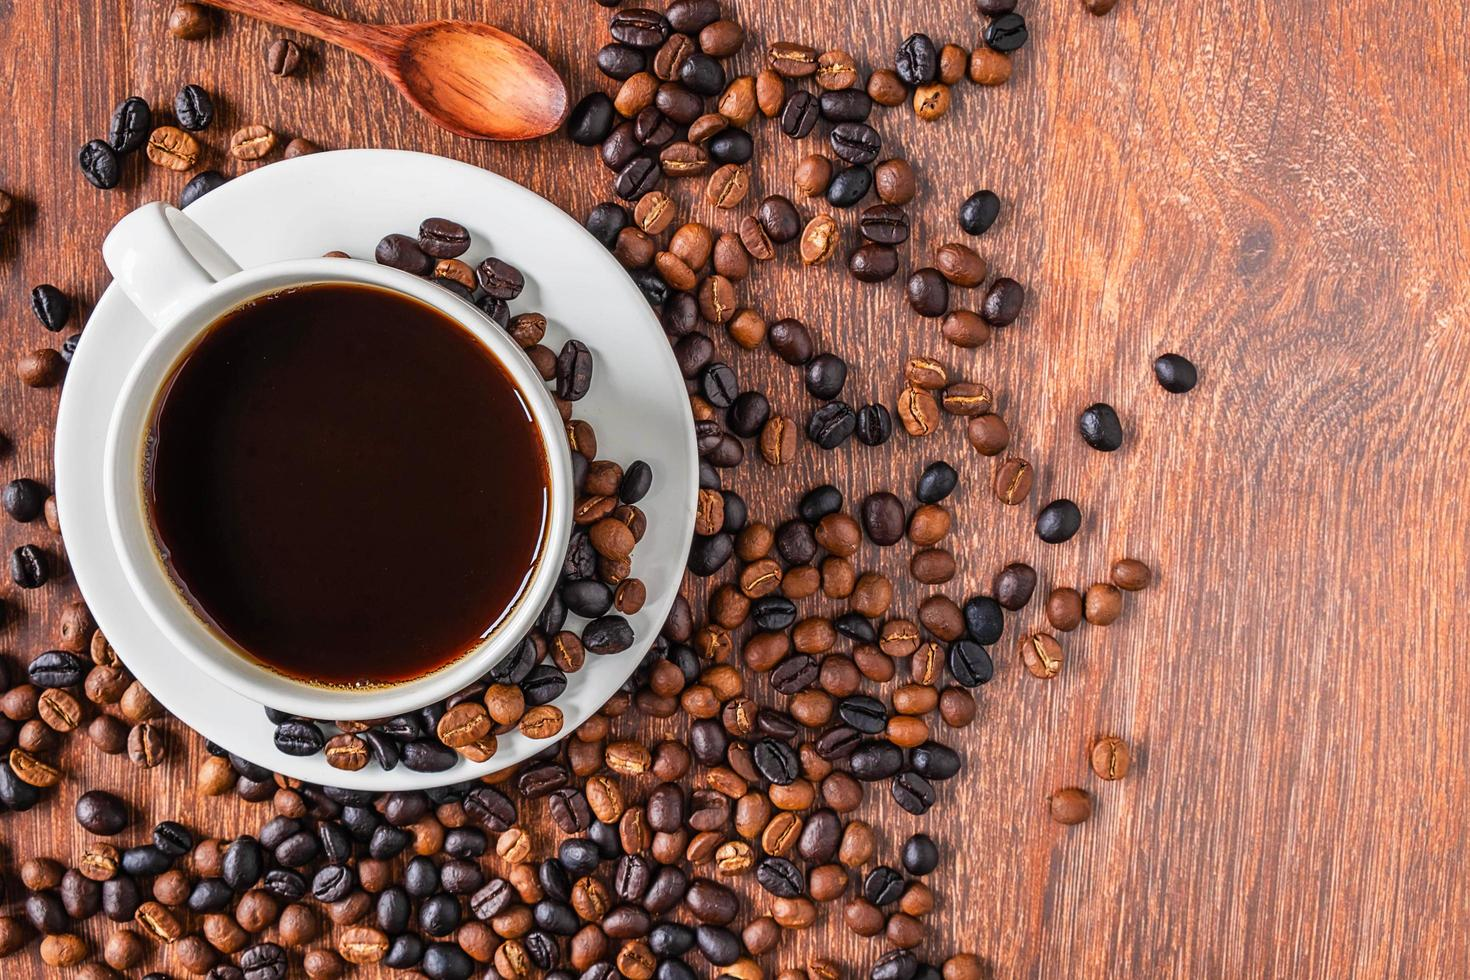 Top view of a cup of coffee with beans photo